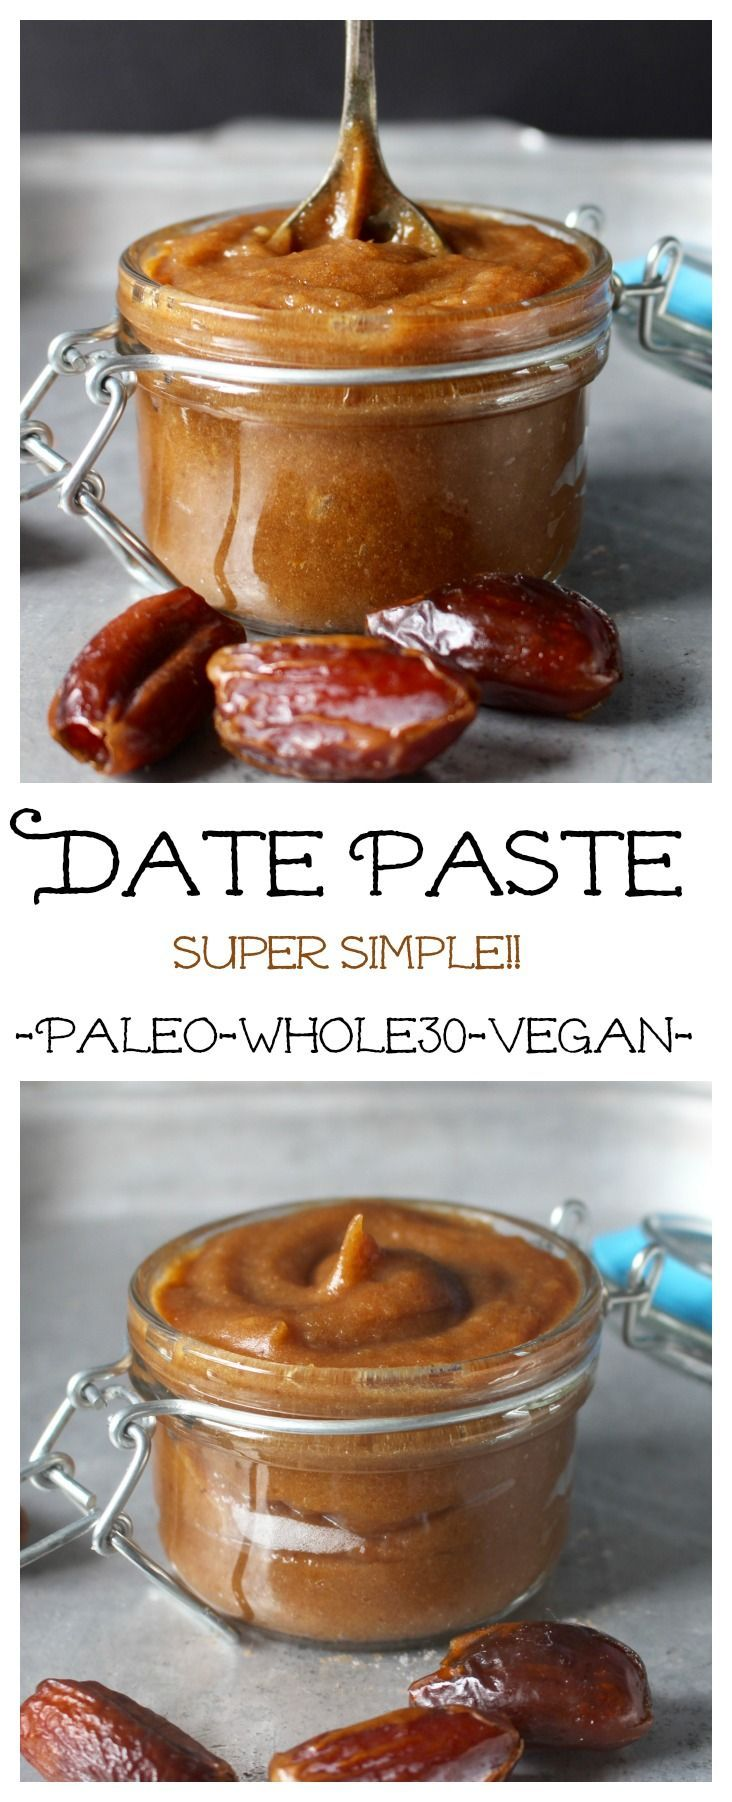 Paleo Date Paste by Jay's Baking Me Crazy.